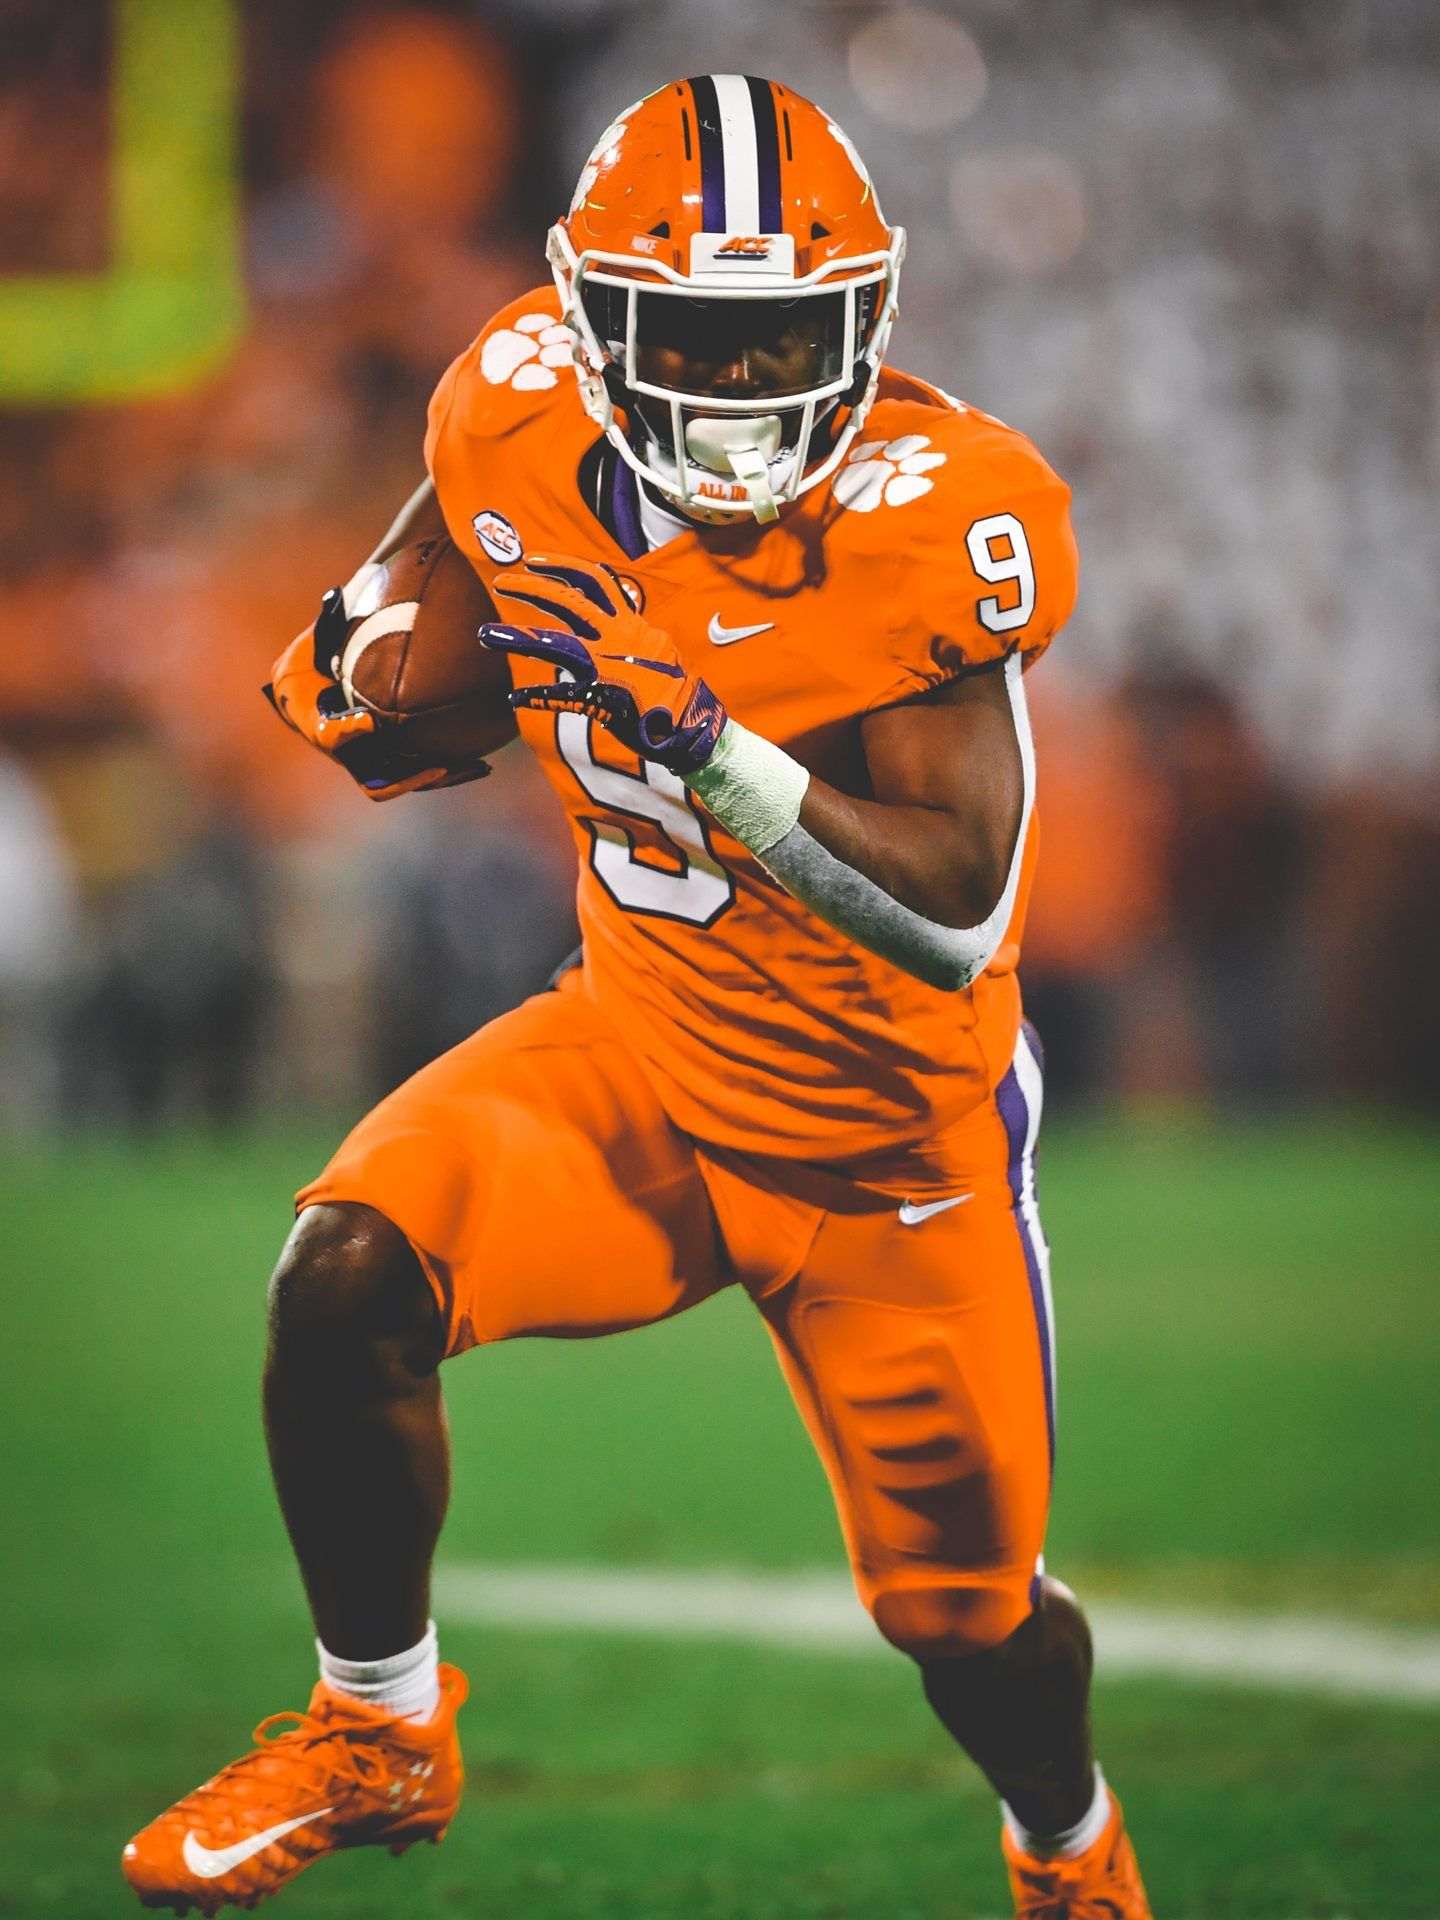 Travis Etienne Heads Up Field For A Big Gain Against South Carolina 11 24 2018 Clemson Tigers Football Washington State Cougars Football Ncaa College Football